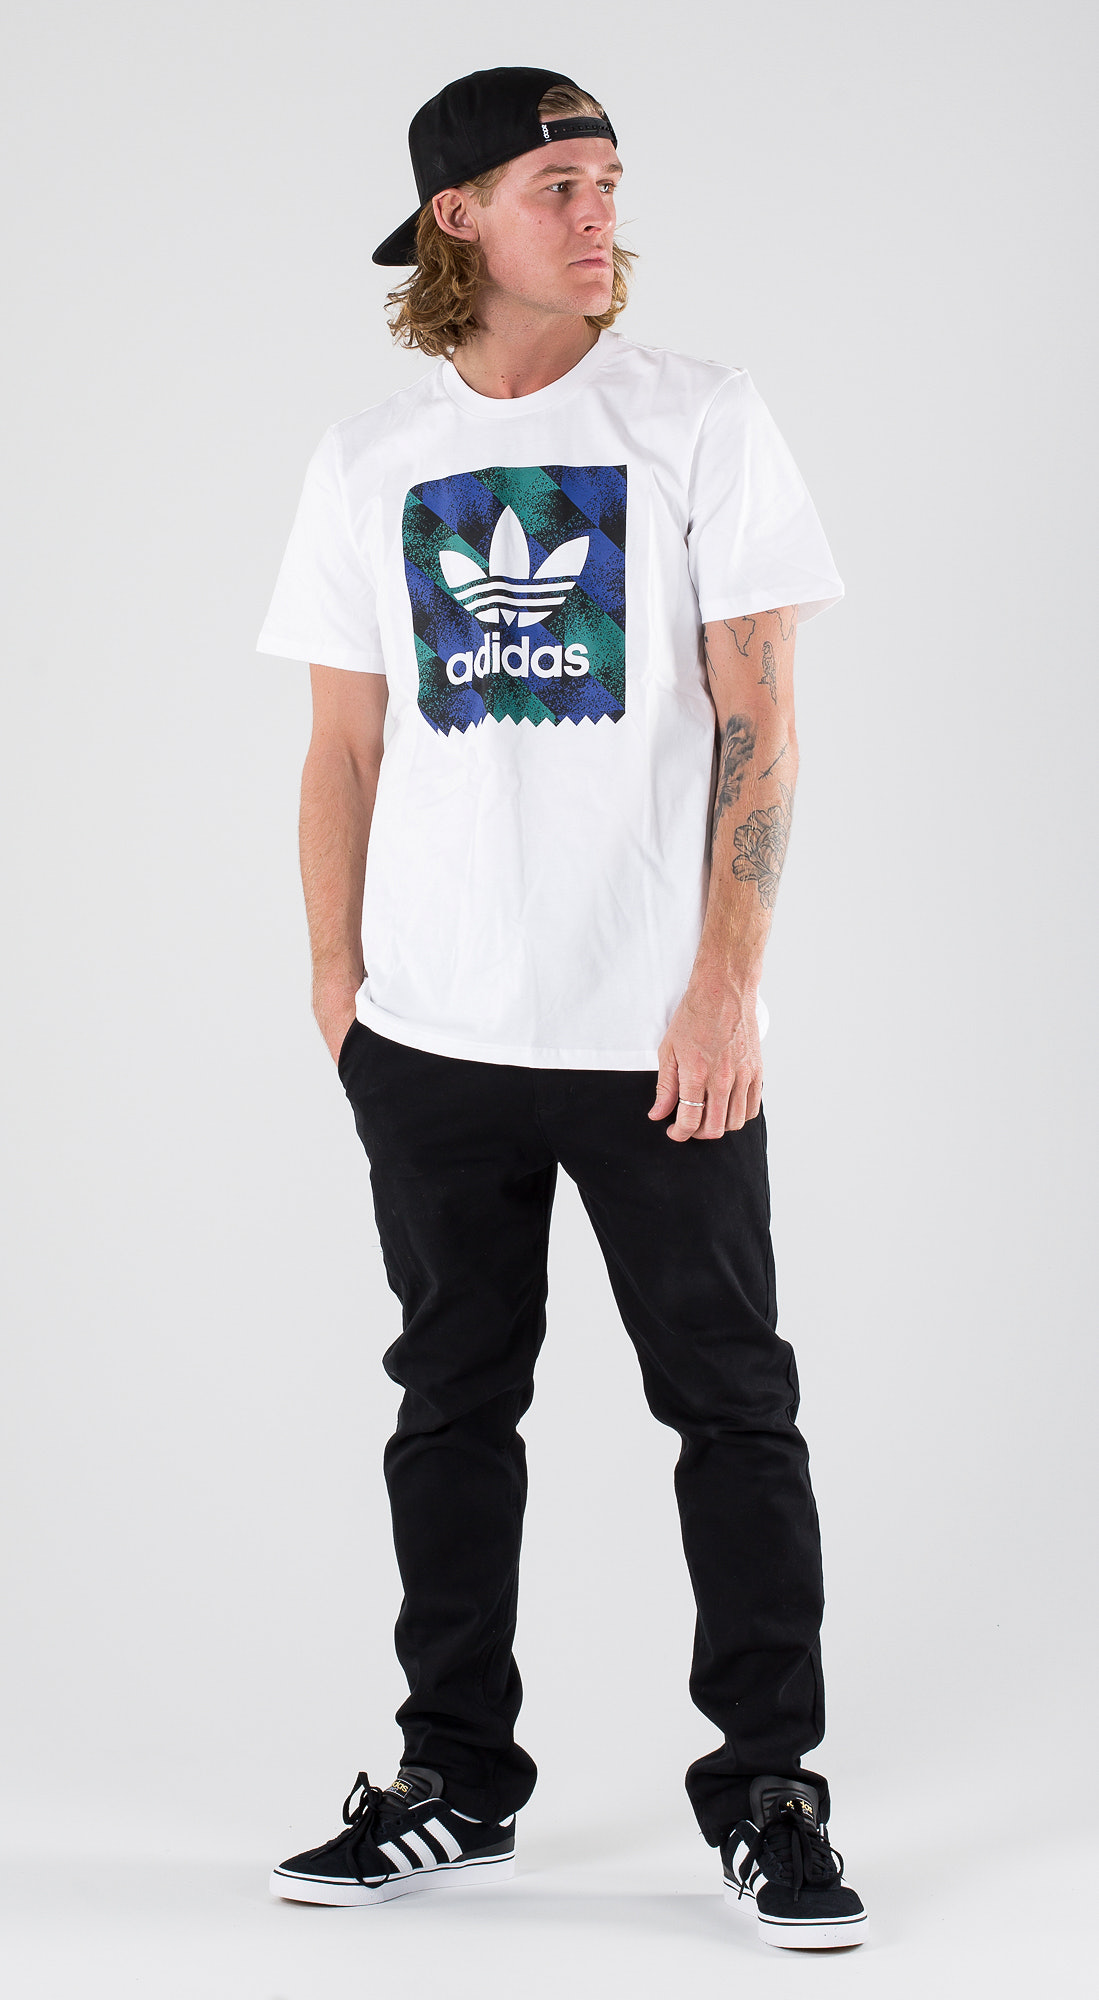 a6cf42190d Adidas Skateboarding Towning Bb T-shirt White/Black/Active Blue ...